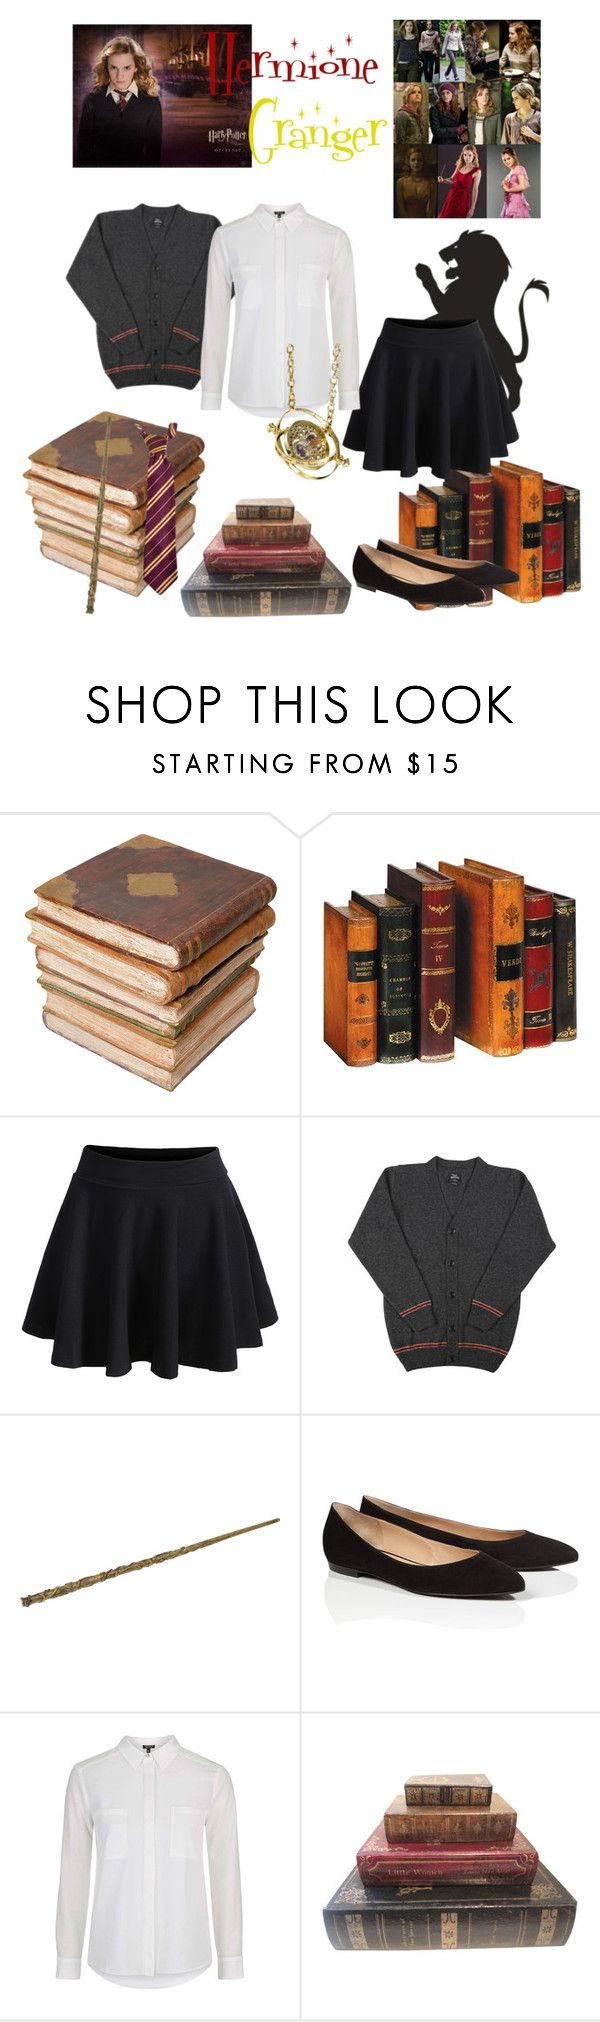 """Hermione Granger : School Outfit"" by dawndreader ❤ liked on Polyvore featuring Ceramiche Pugi, ESCADA and Topshop"